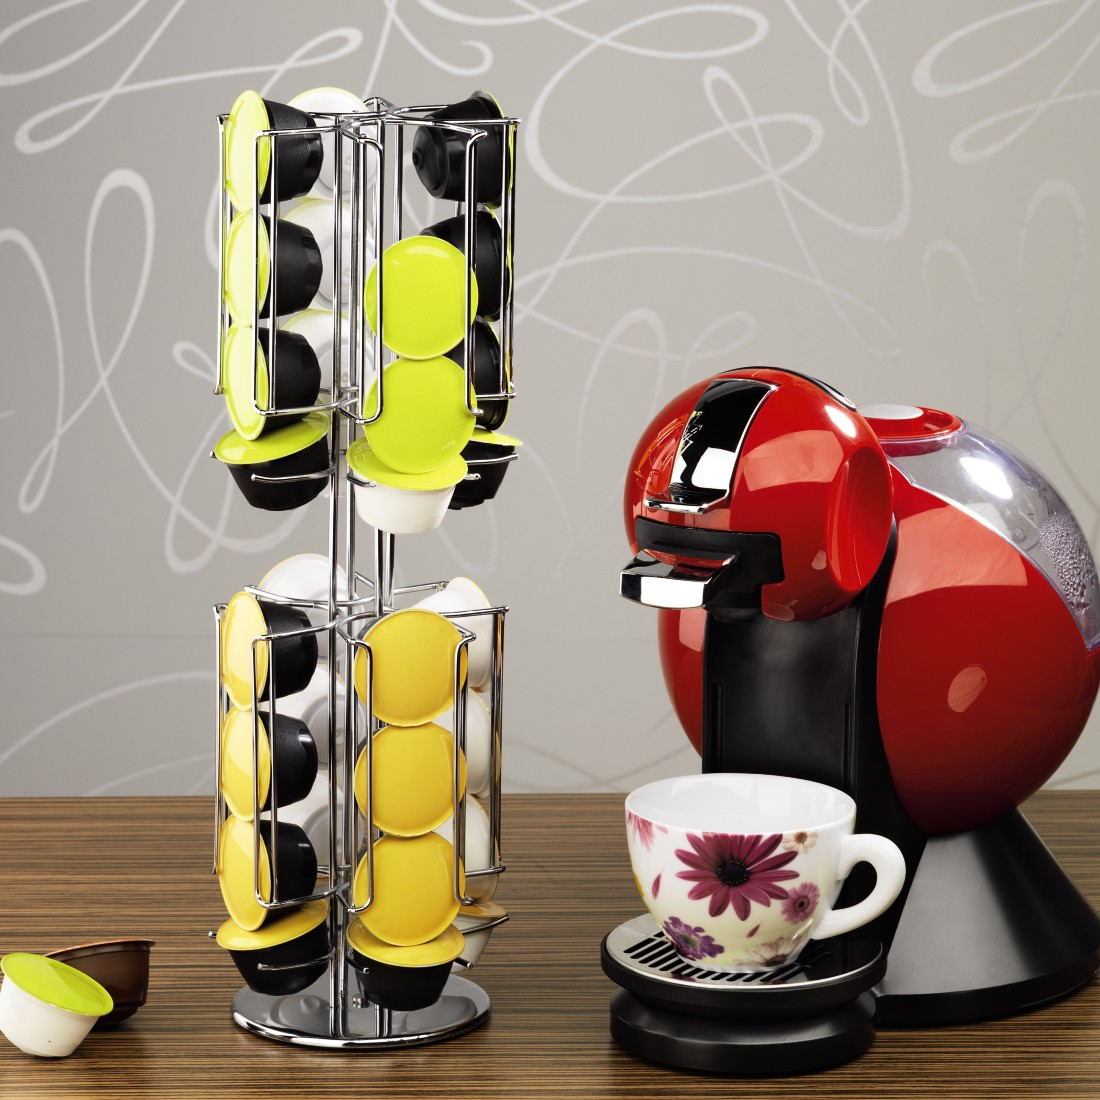 awx High-Res Appliance - Xavax, Rondello Coffee Capsule Stand for Dolce Gusto, 32 capsules